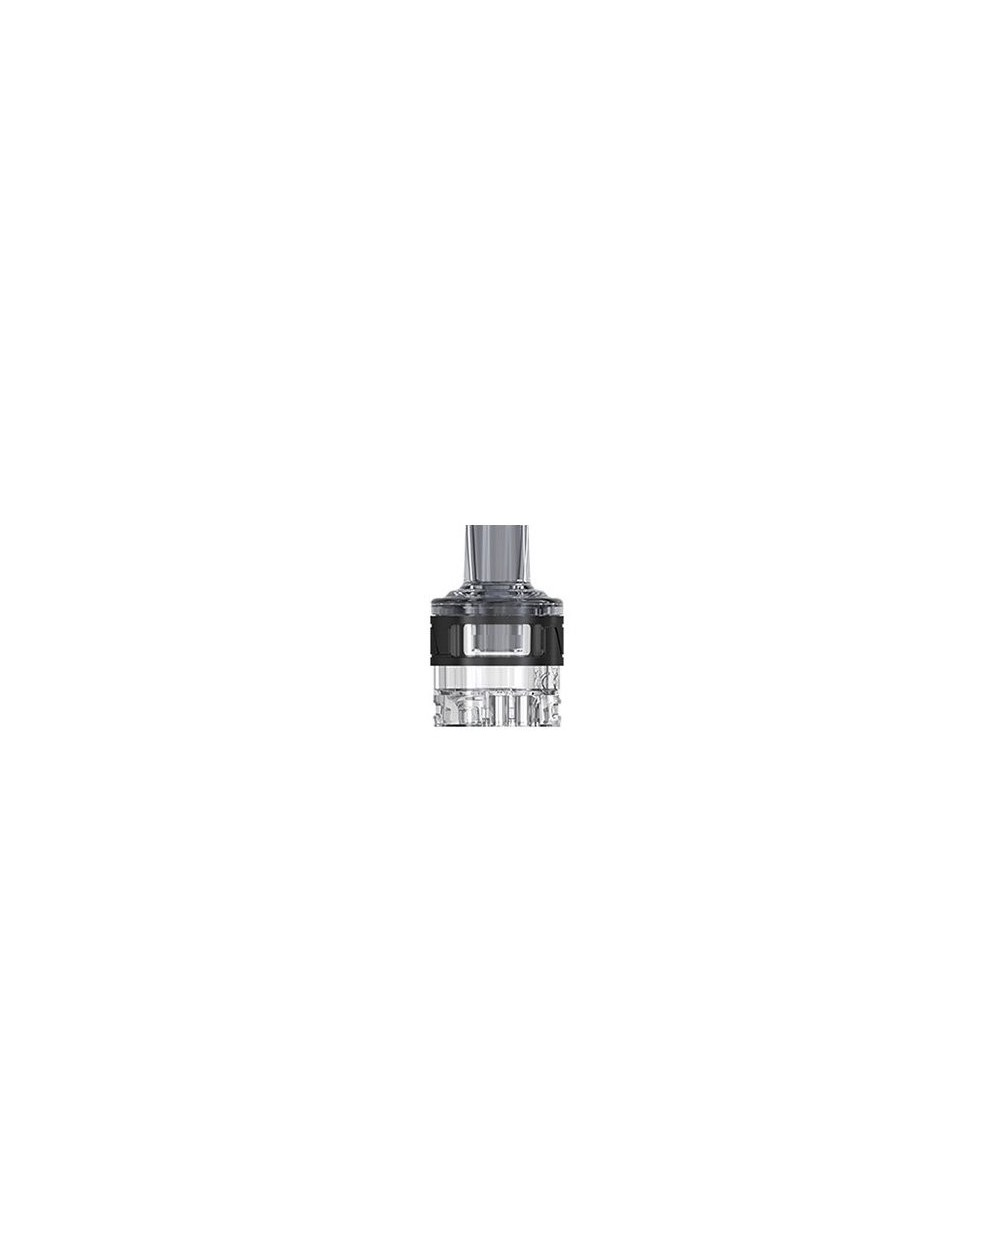 Empty iJust AIO Cartridge Pod - Eleaf